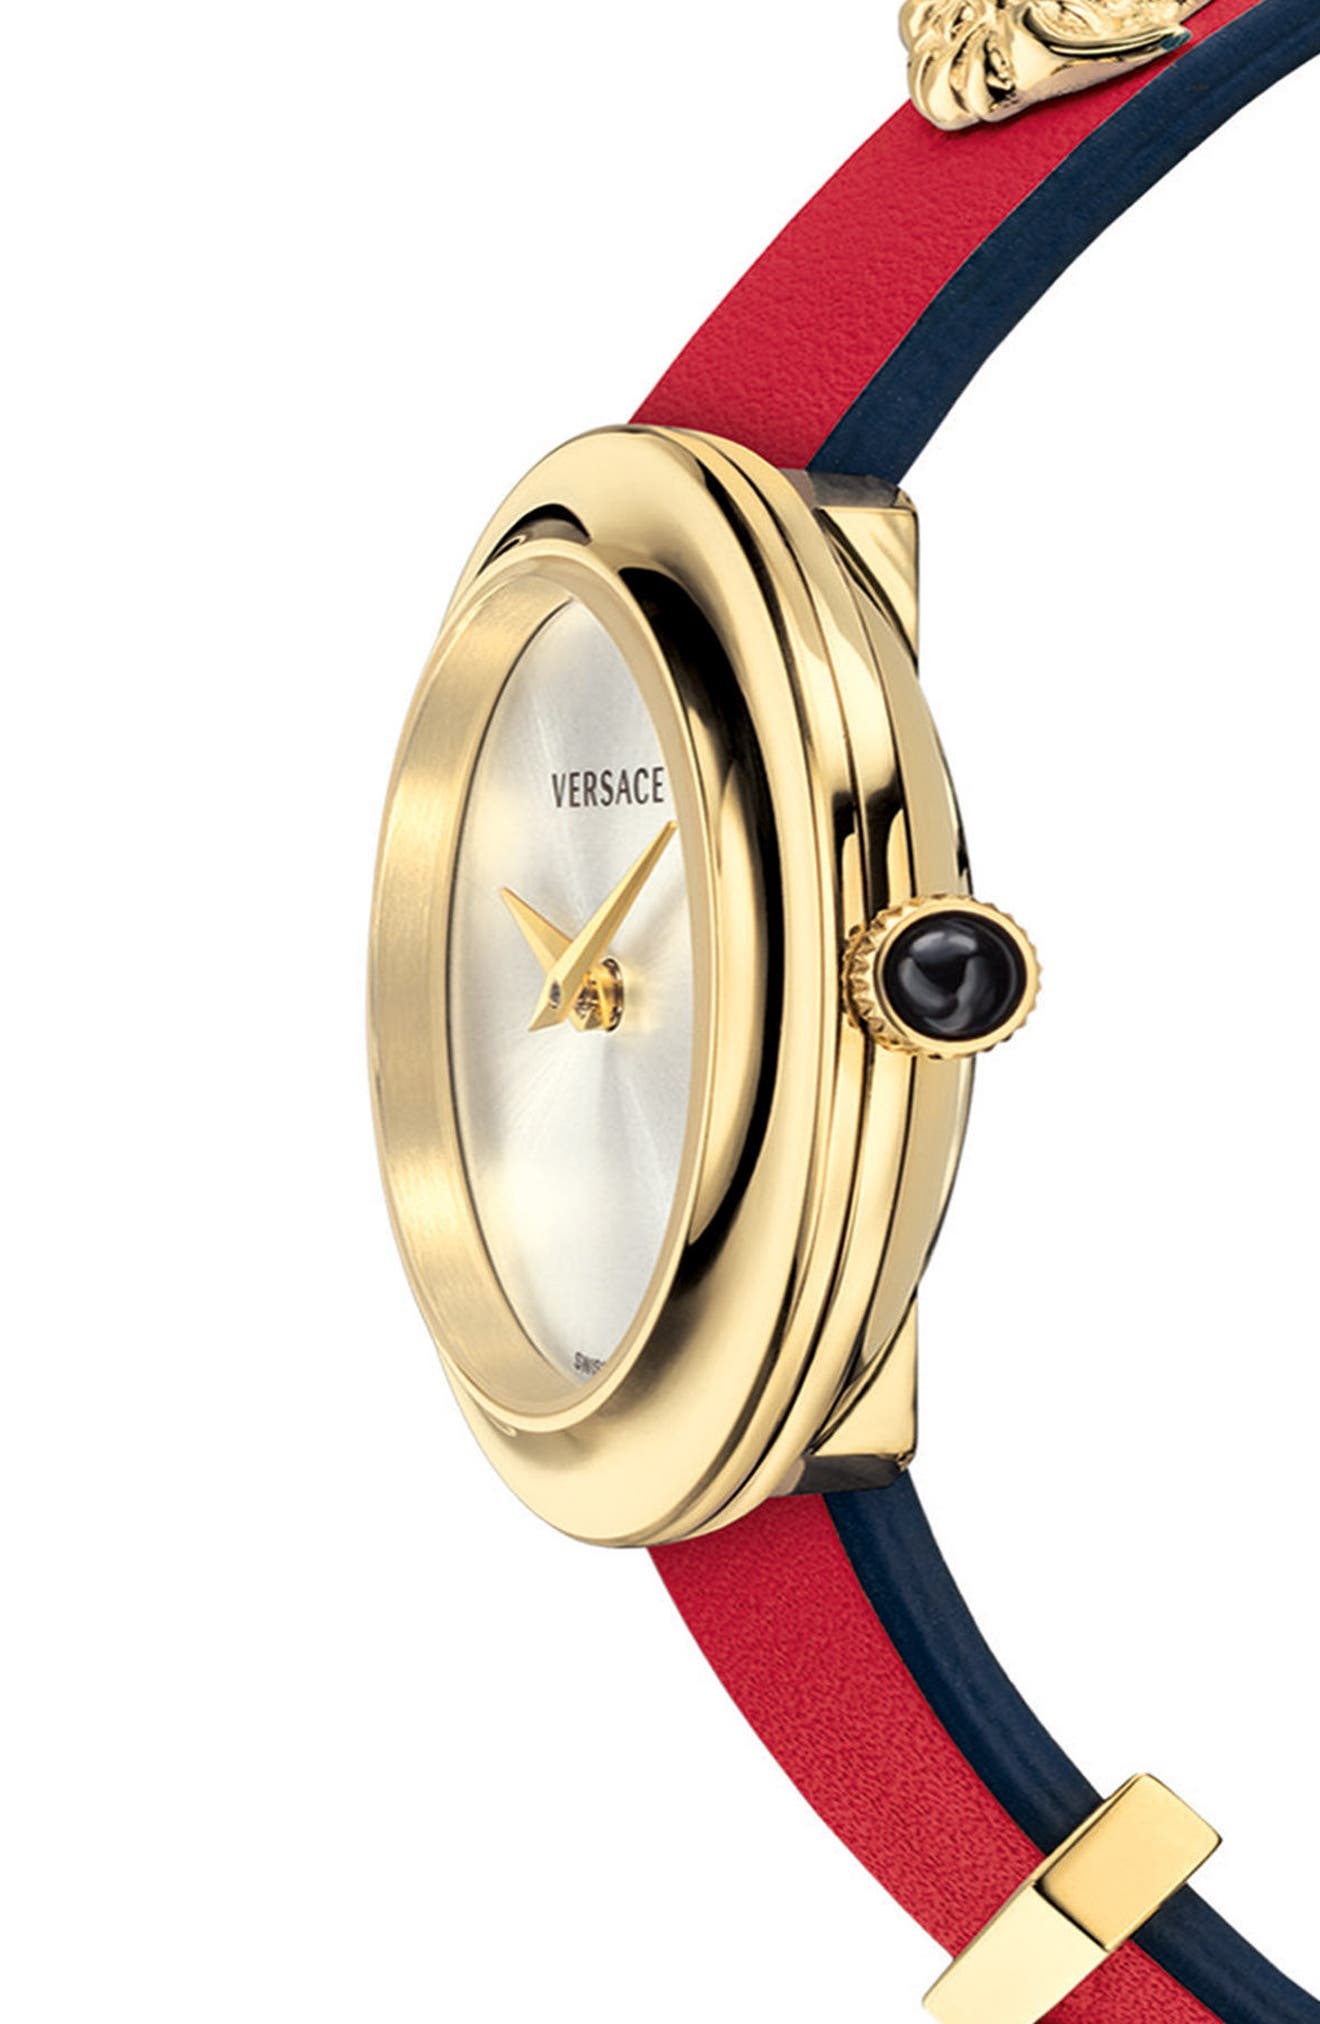 VERSACE, V-Flare Double Wrap Leather Strap Watch, 28mm, Alternate thumbnail 3, color, RED/ SILVER/ GOLD